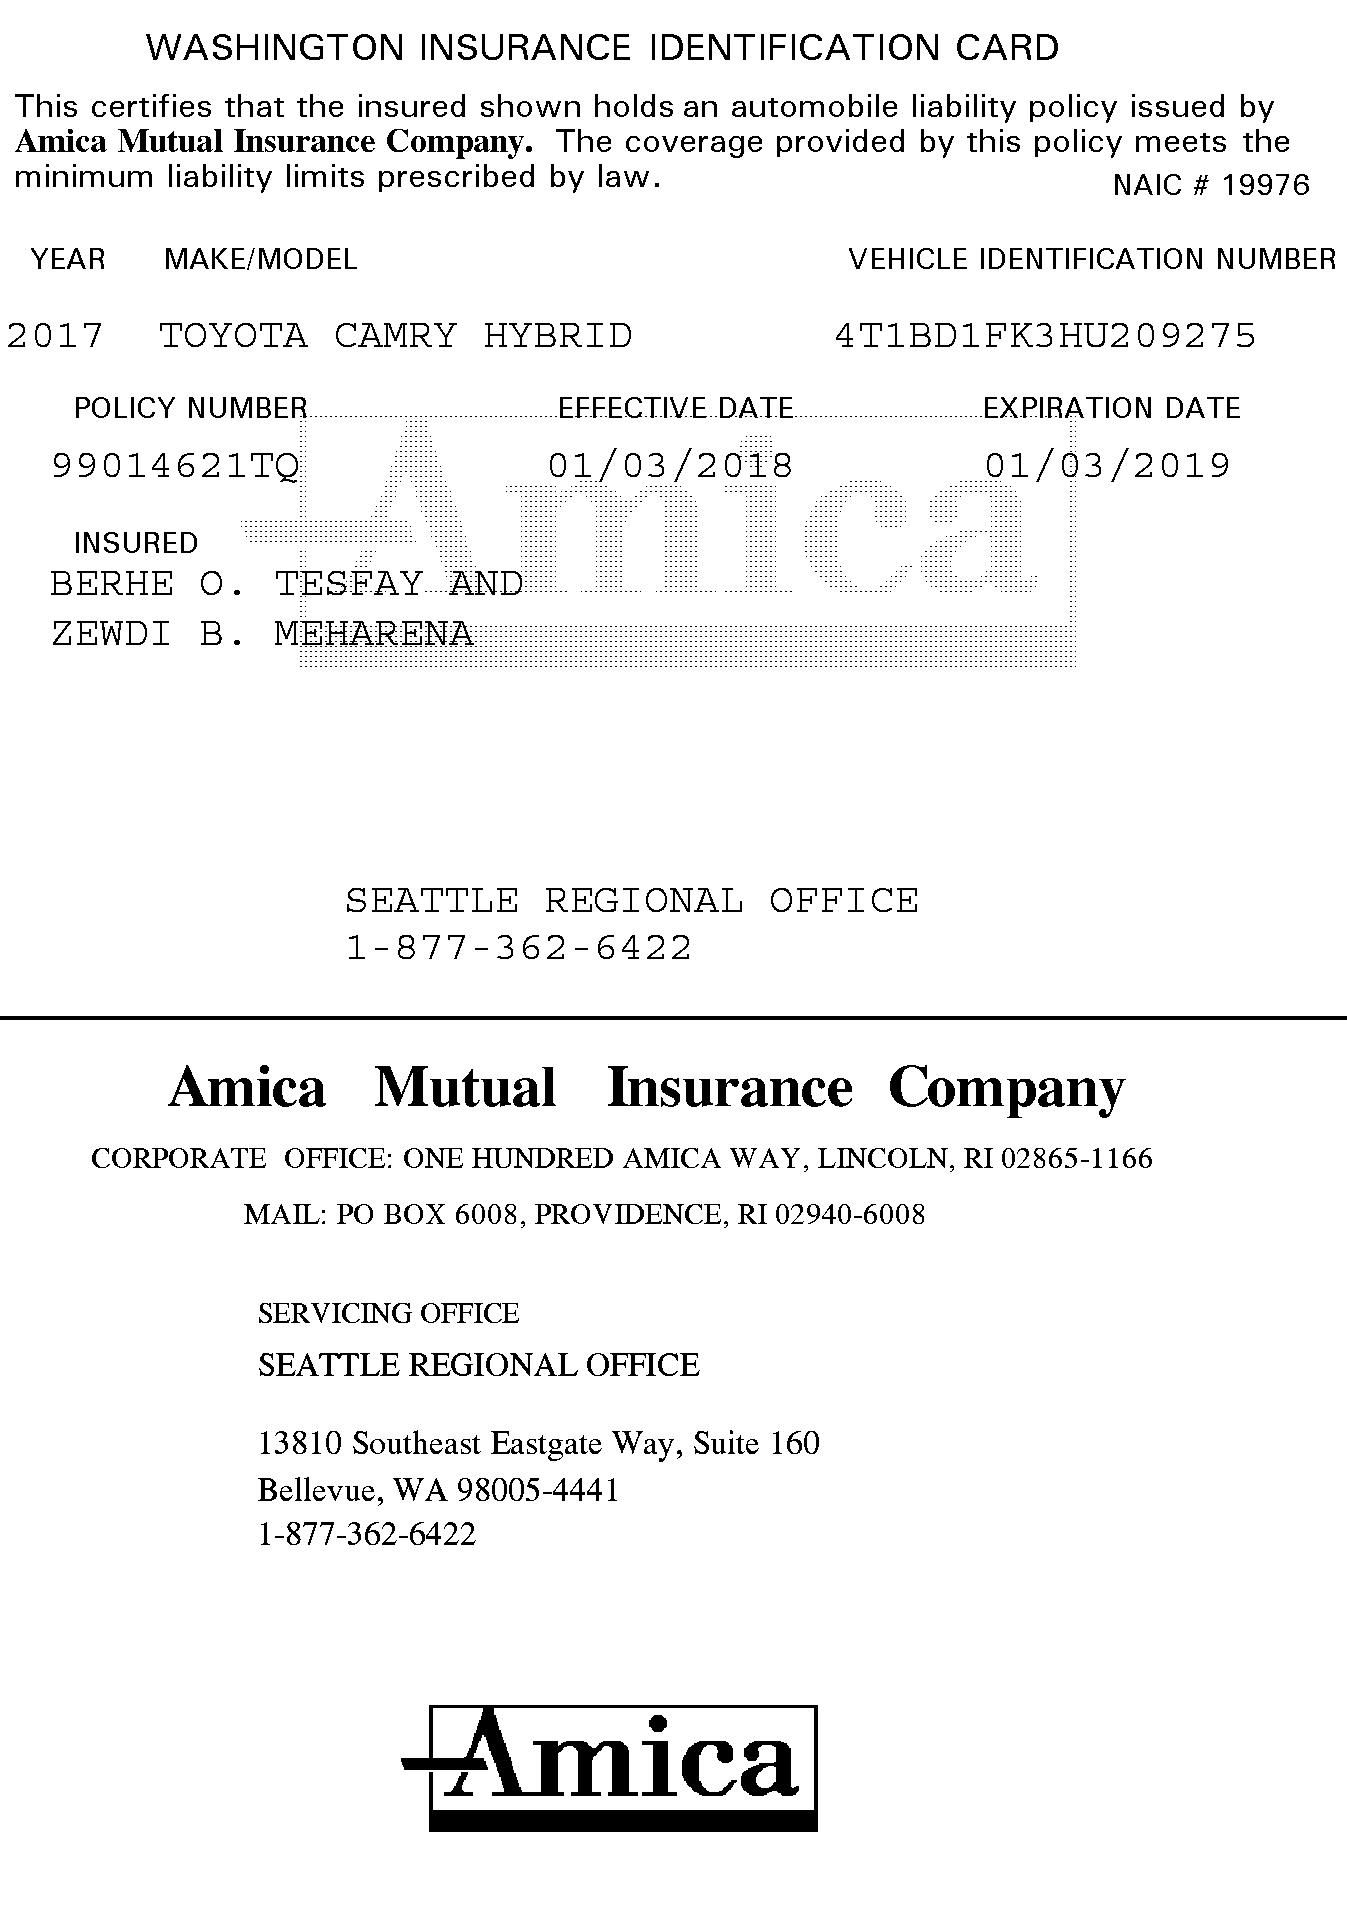 Amica Insurance Insurance Identification Card Confirmation